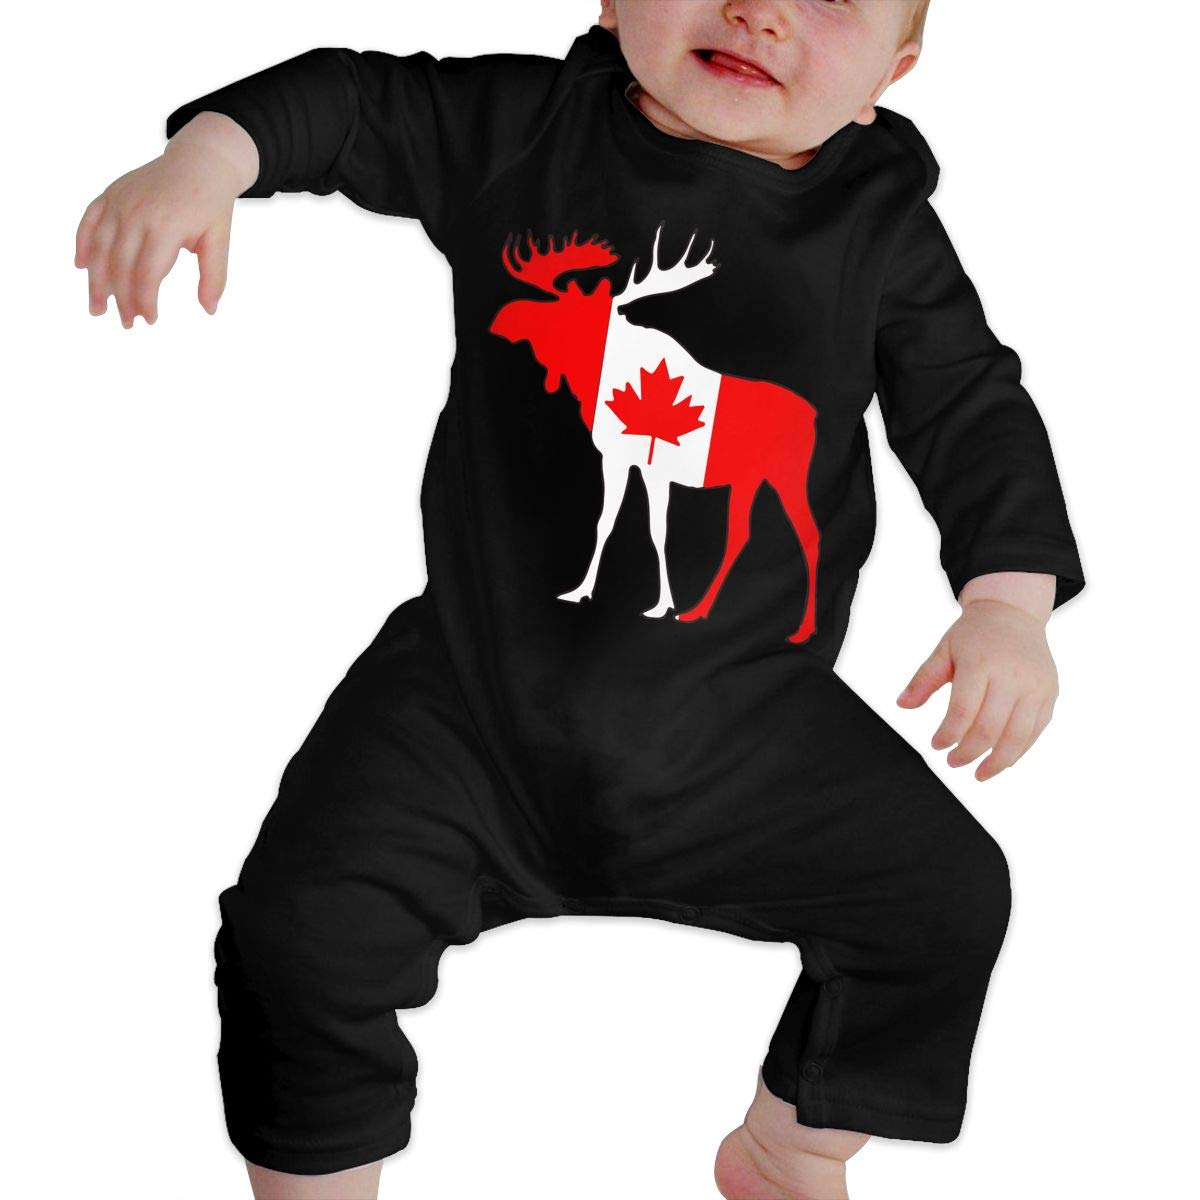 UGFGF-S3 Moose and Canadian Flag Long Sleeve Infant Baby Romper Jumpsuit Onsies 6-24 Months Baby Bodysuit